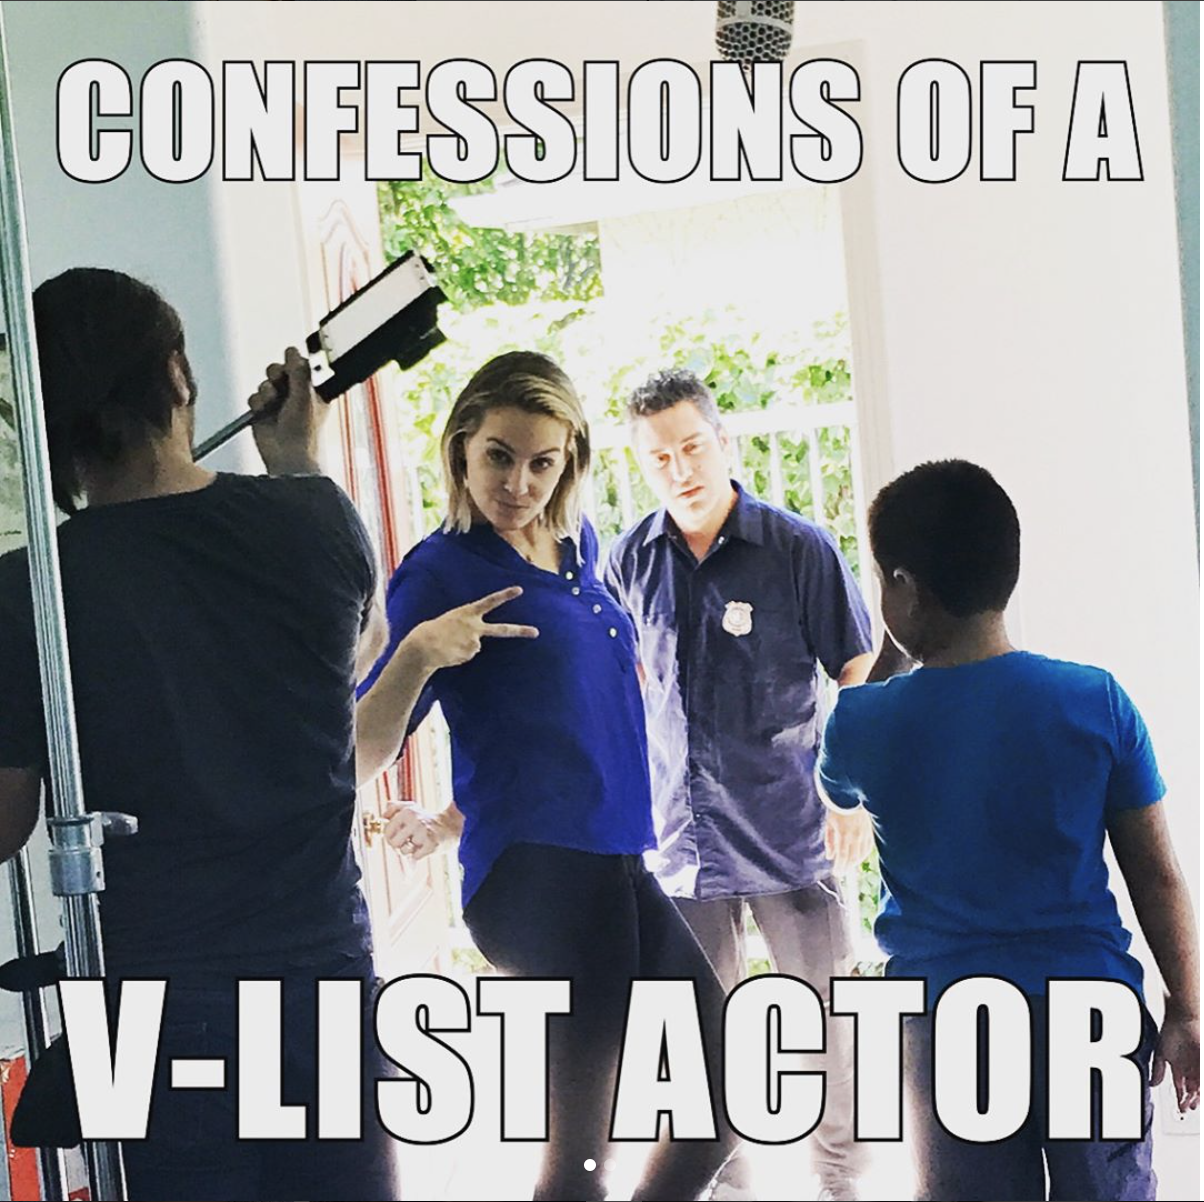 Video 1: Confessions of a V-List Actor